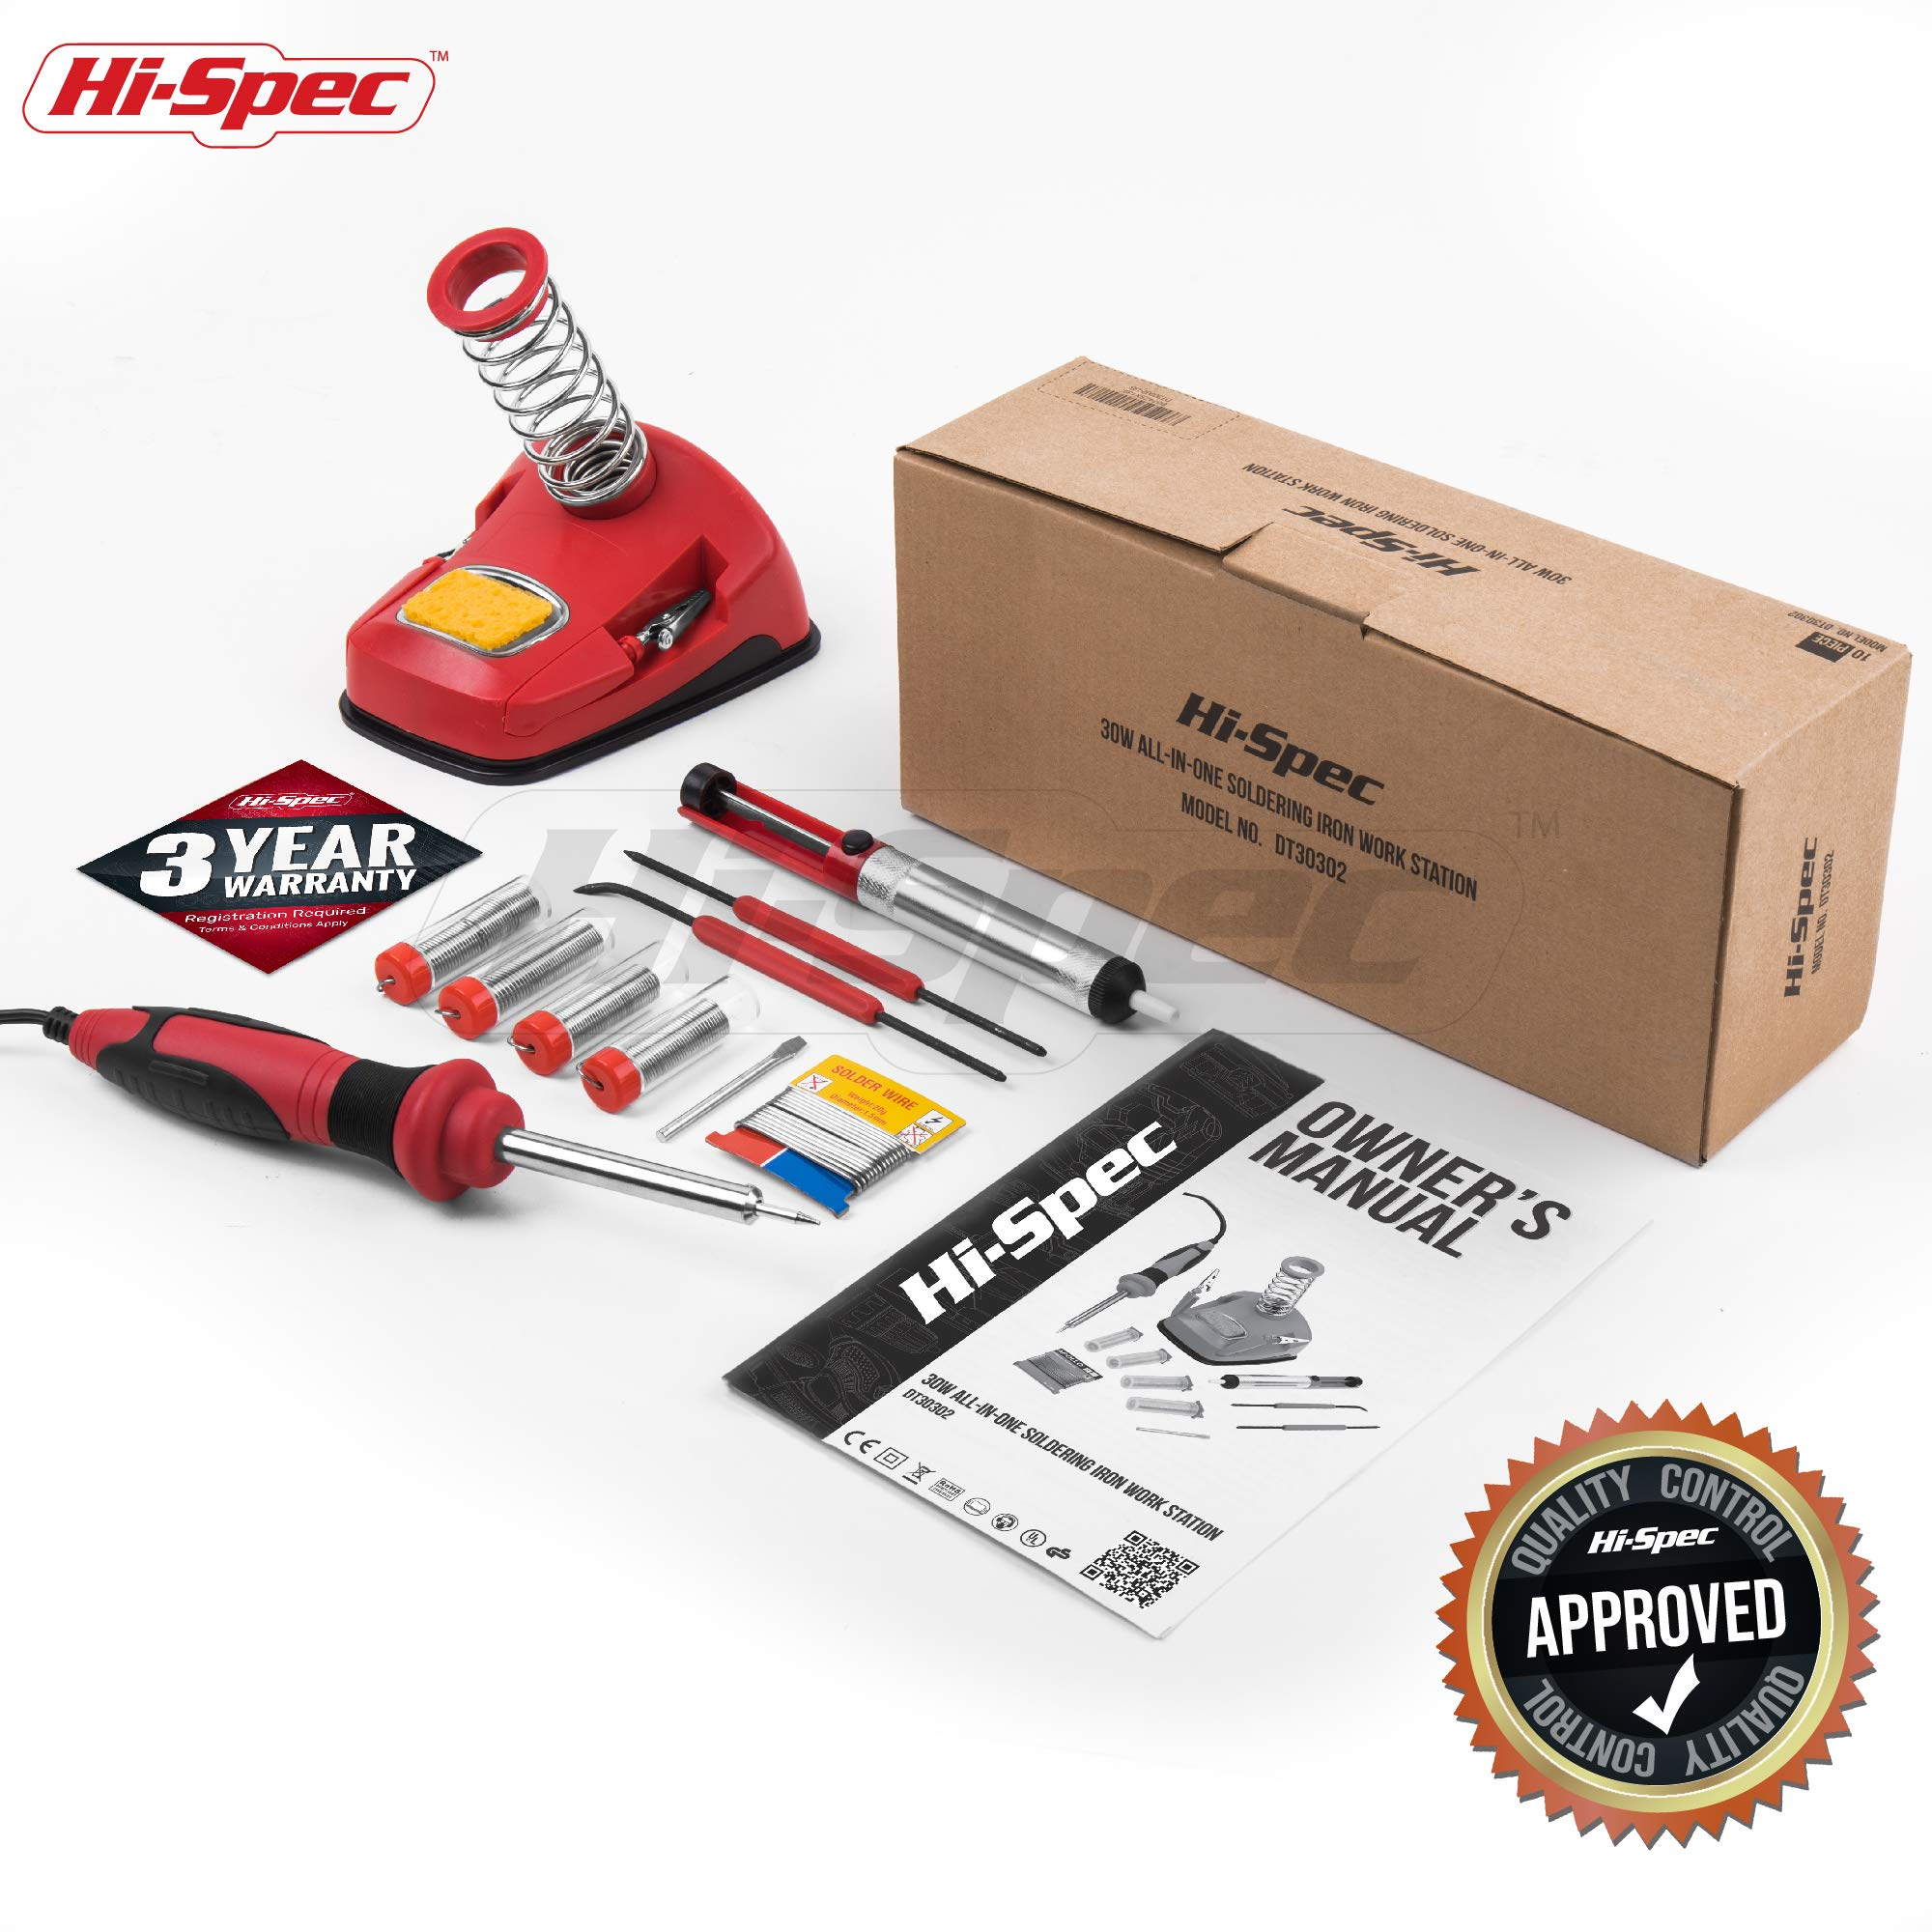 Hi-Spec All-In-One 30W Soldering Station inc. Soldering Iron, Helping Hands & 9pc Accessory Set - Desoldering Pump, Tin Alloy Solder, De-Solder Alloy & 2pc Solder Assist Tools by Hi-Spec (Image #6)